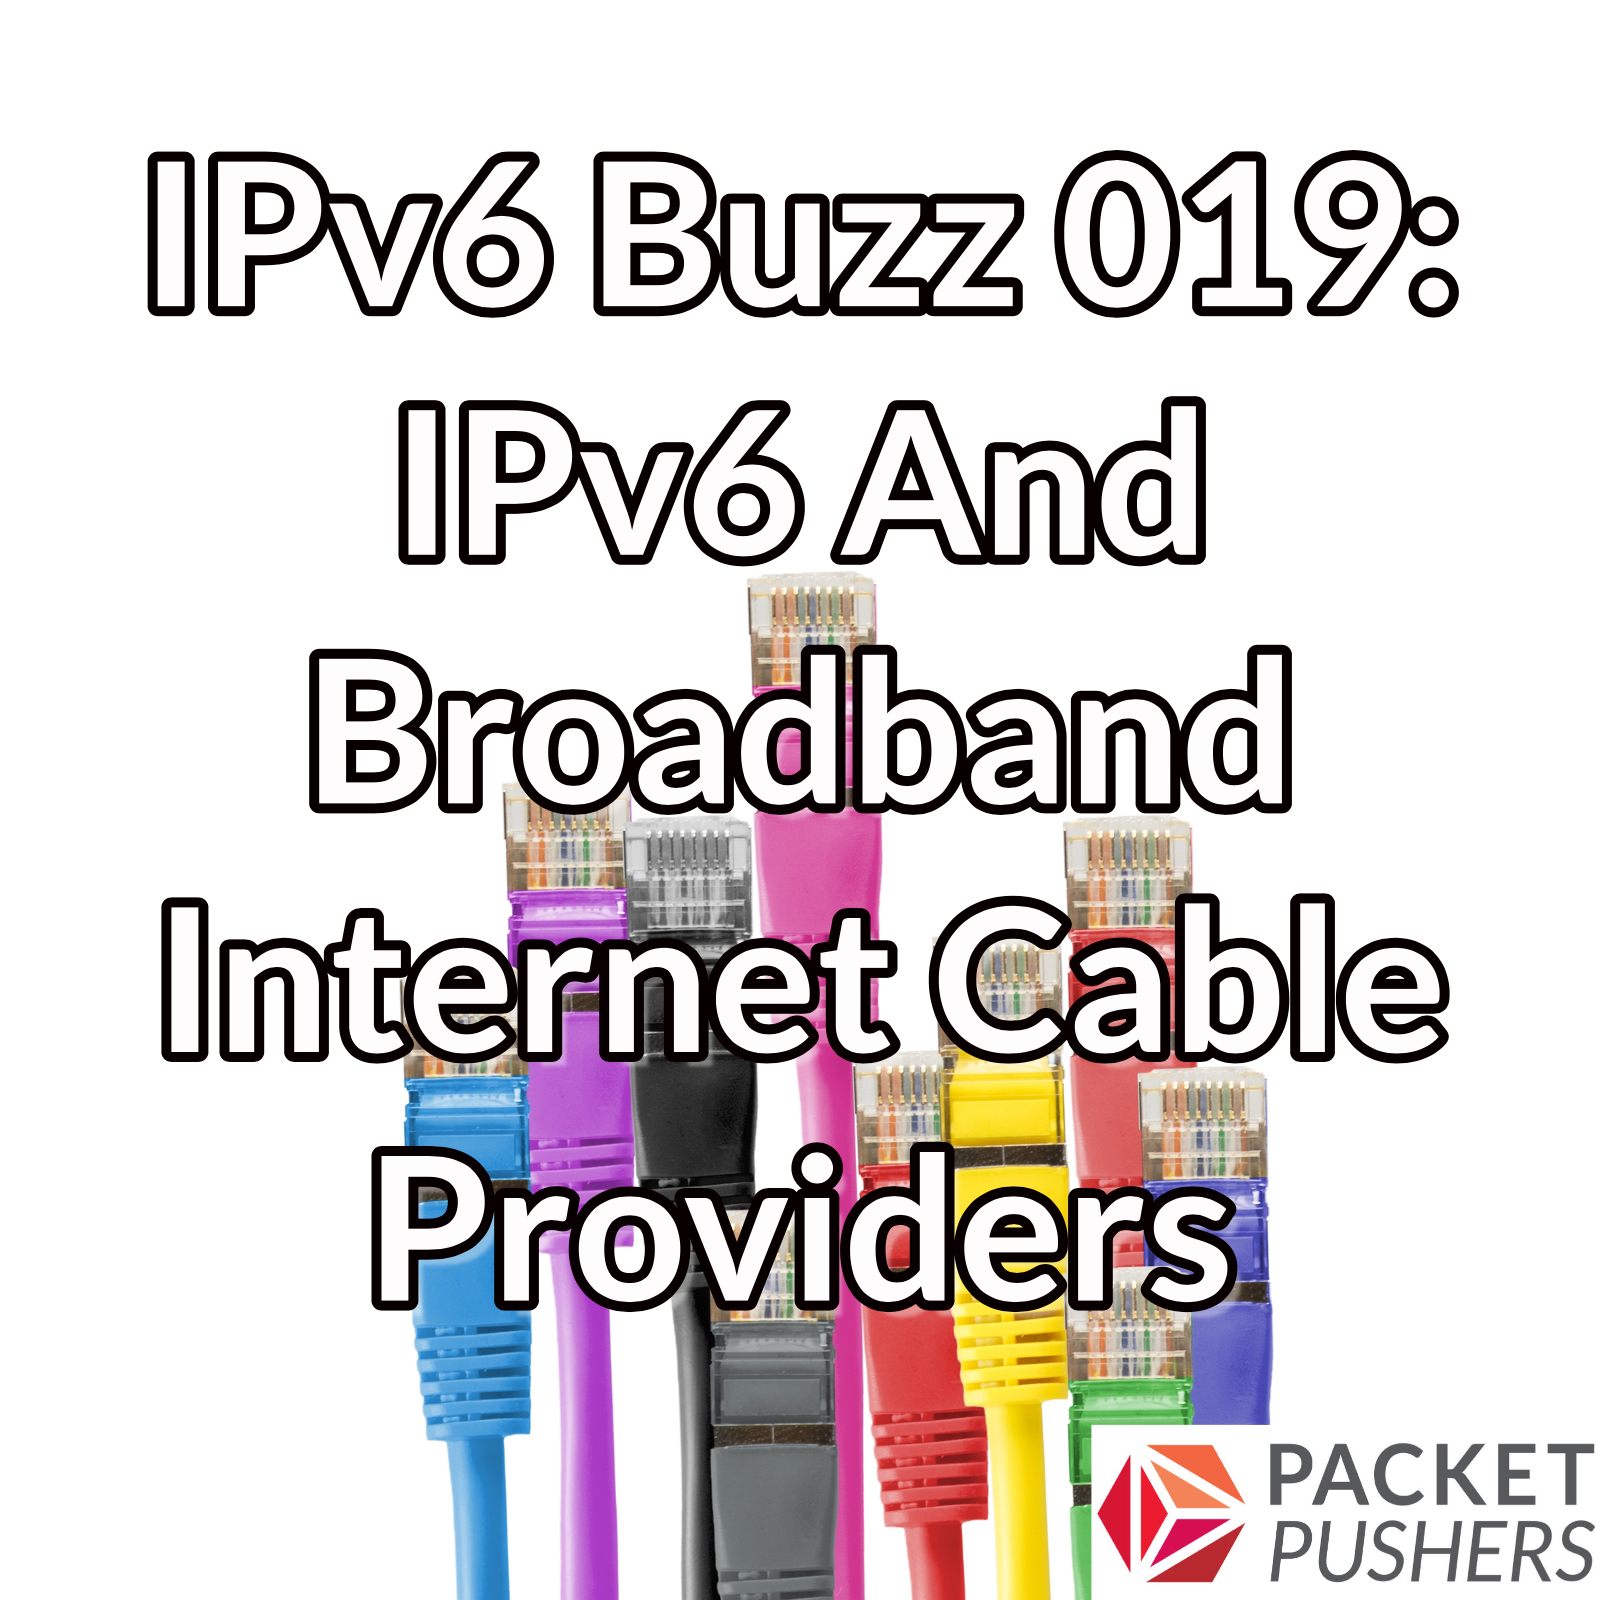 IPv6 And Broadband Internet Cable Providers